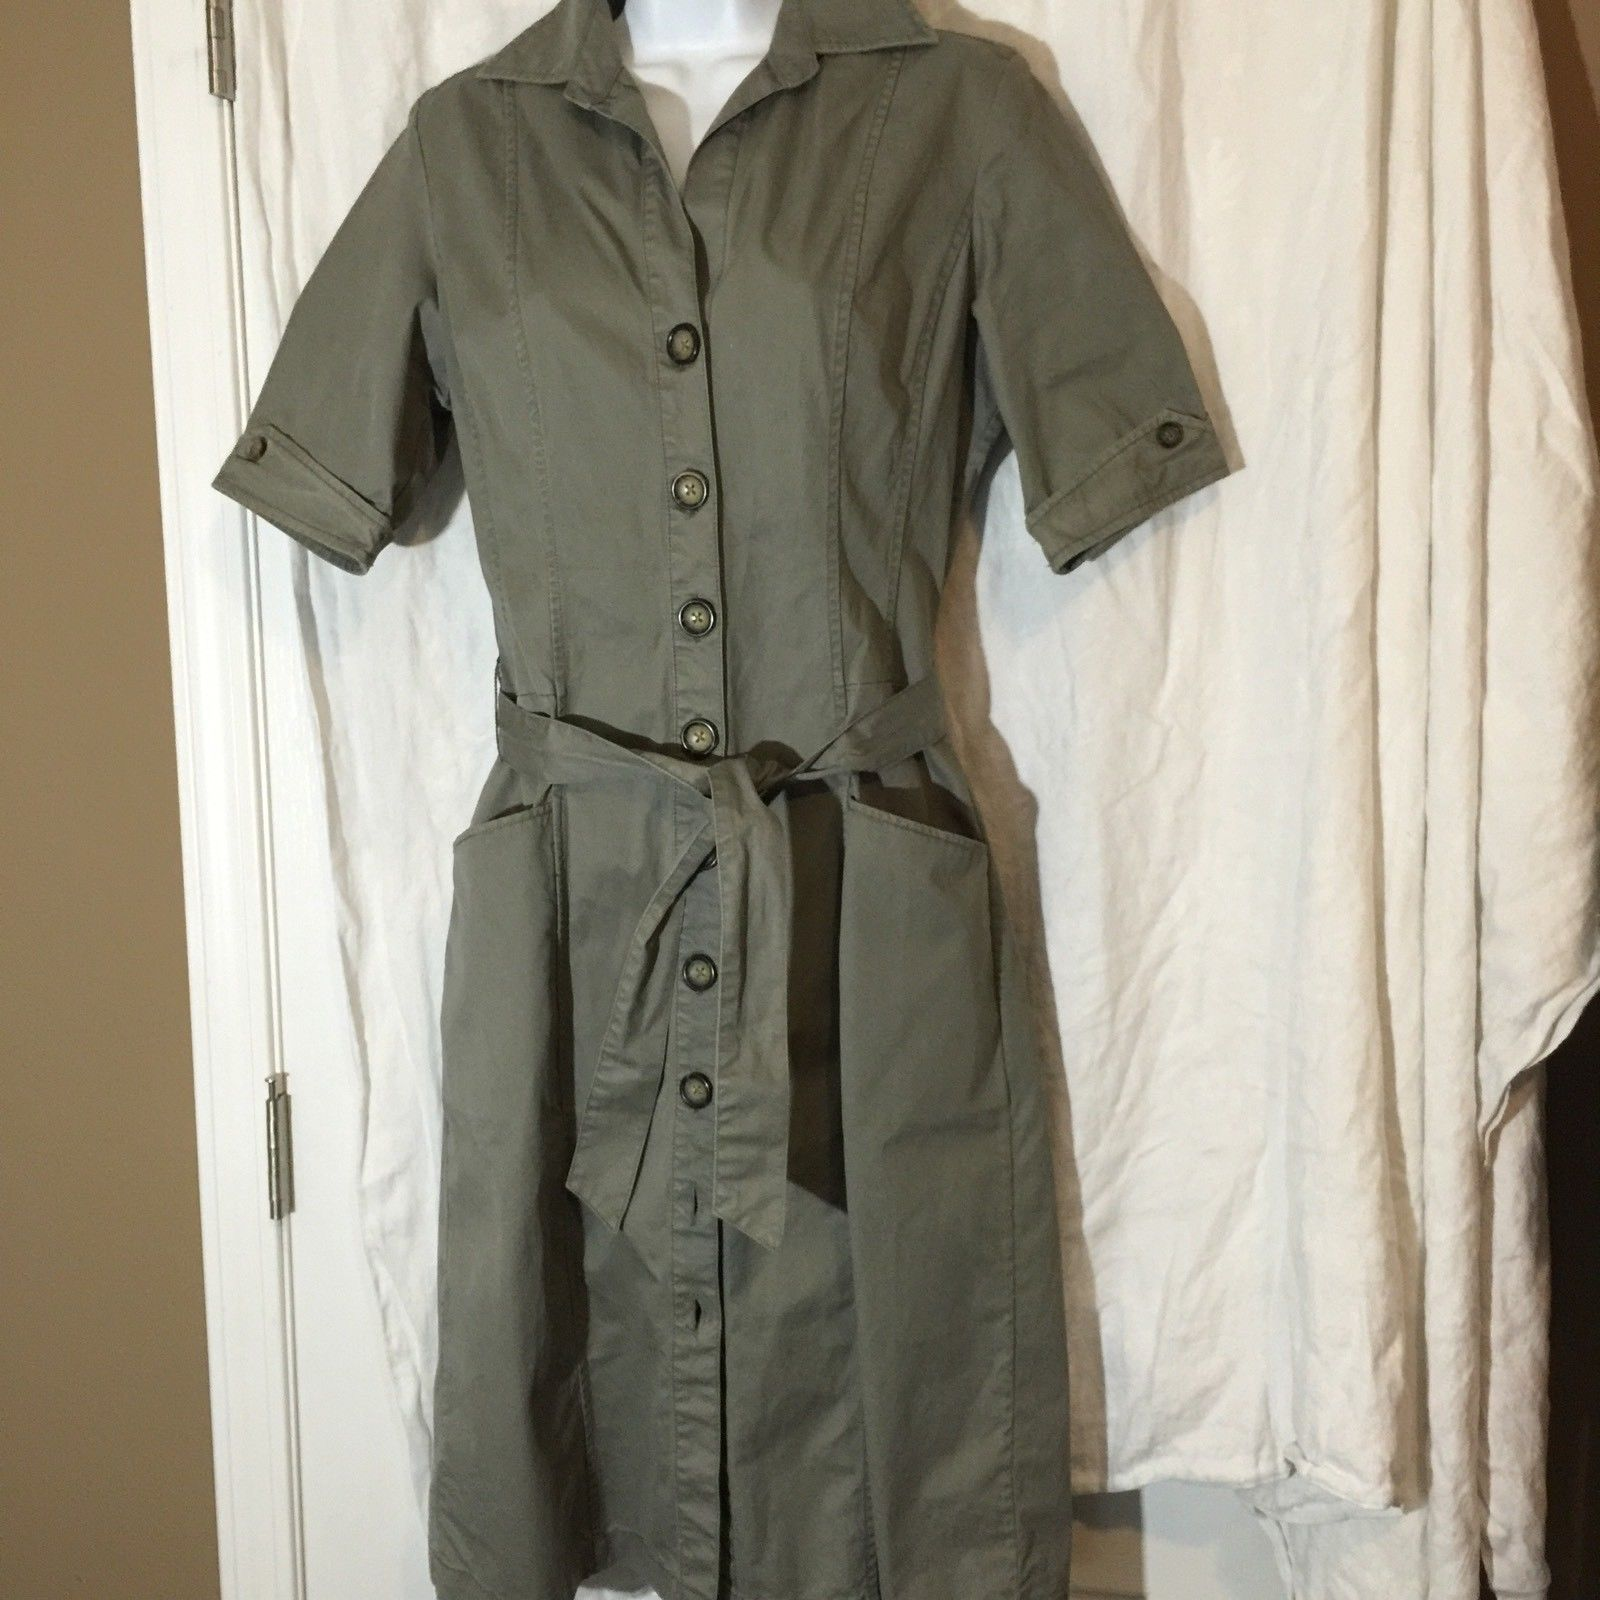 Banana Republic Womens Dress 6 Military Fatigue Style Deep Pockets Belted Olive   eBay